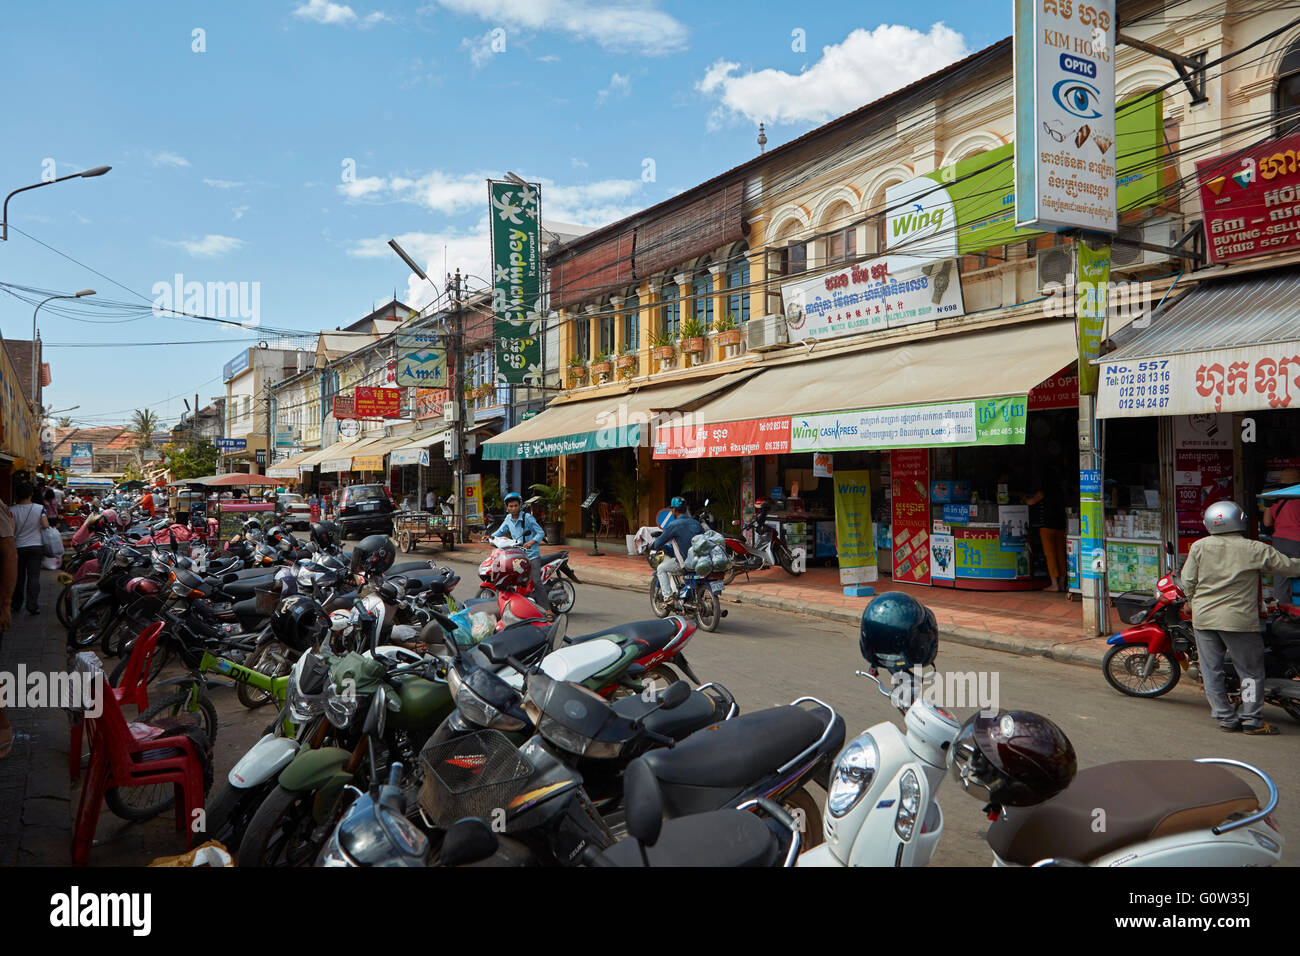 Motorbikes and shops, Siem Reap, Cambodia - Stock Image